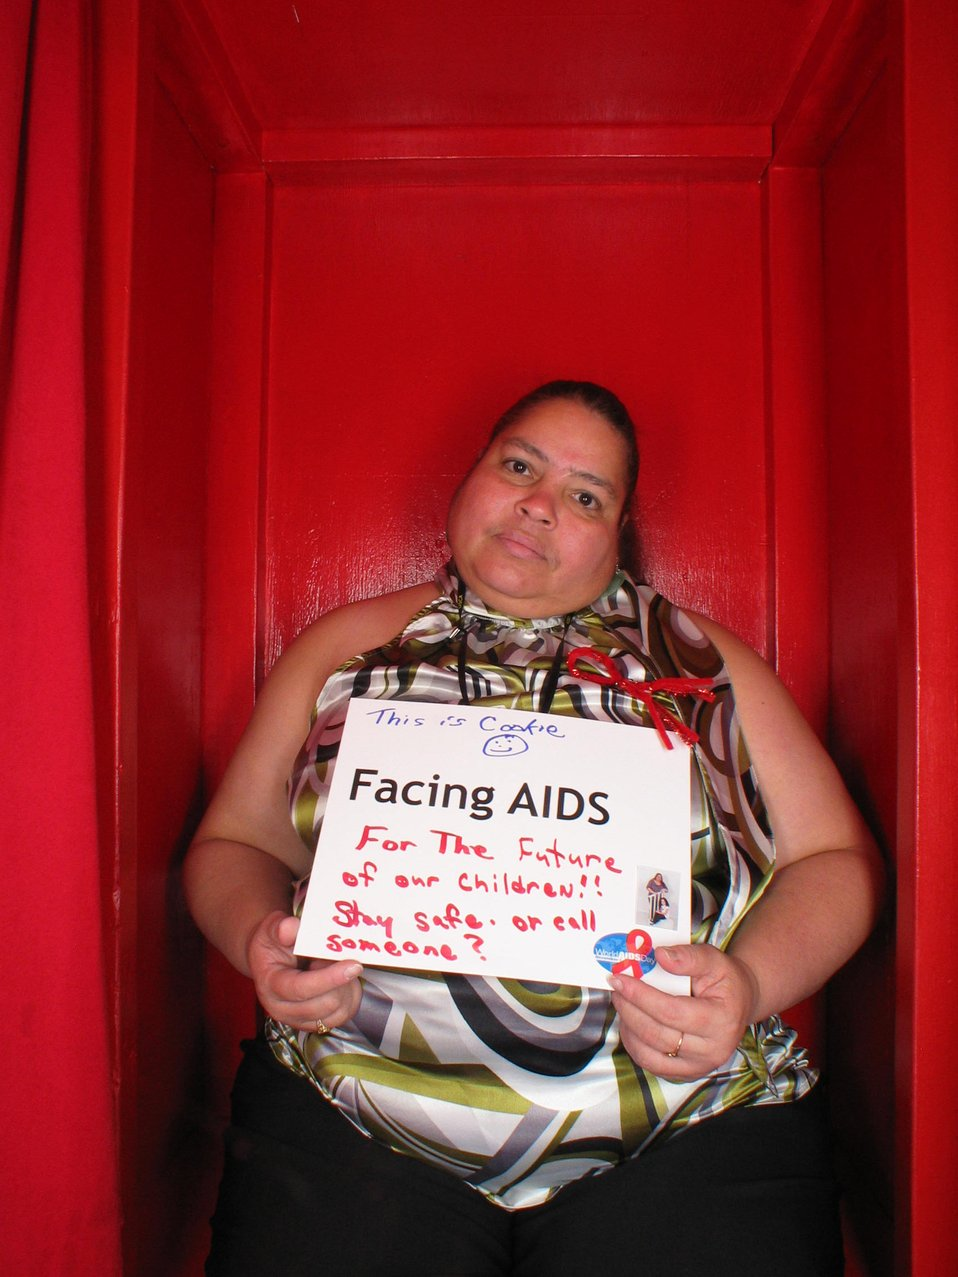 Facing AIDS for the future of our children!!! Stay safe.